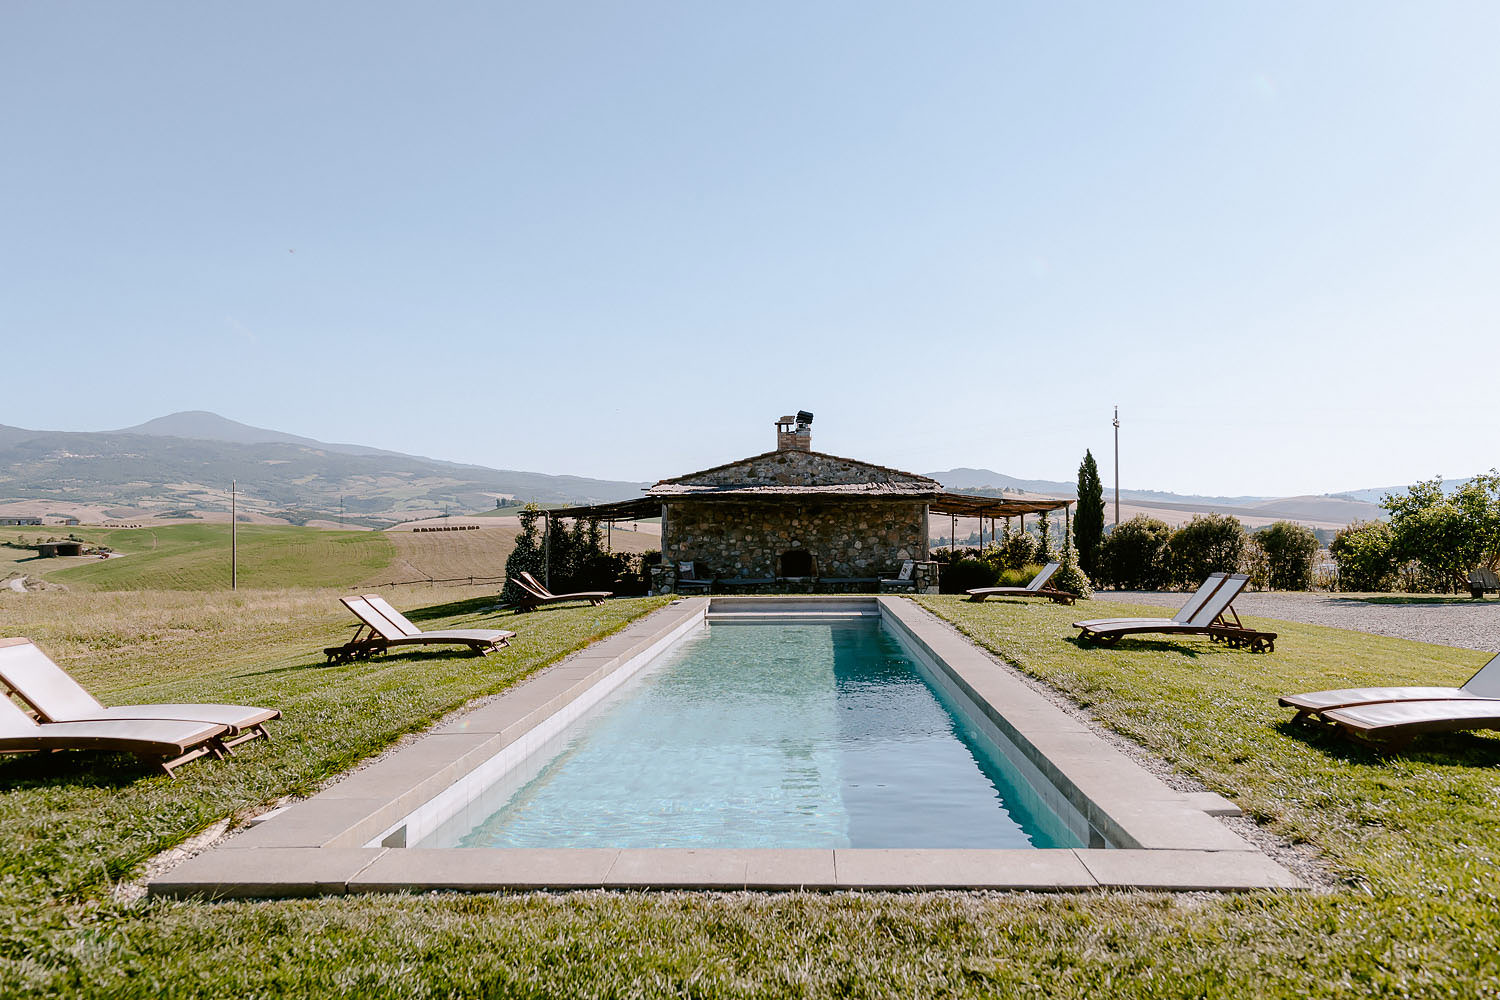 Wedding Inspiration Tuscan Rolling Hills locanda in tuscany view by the pool